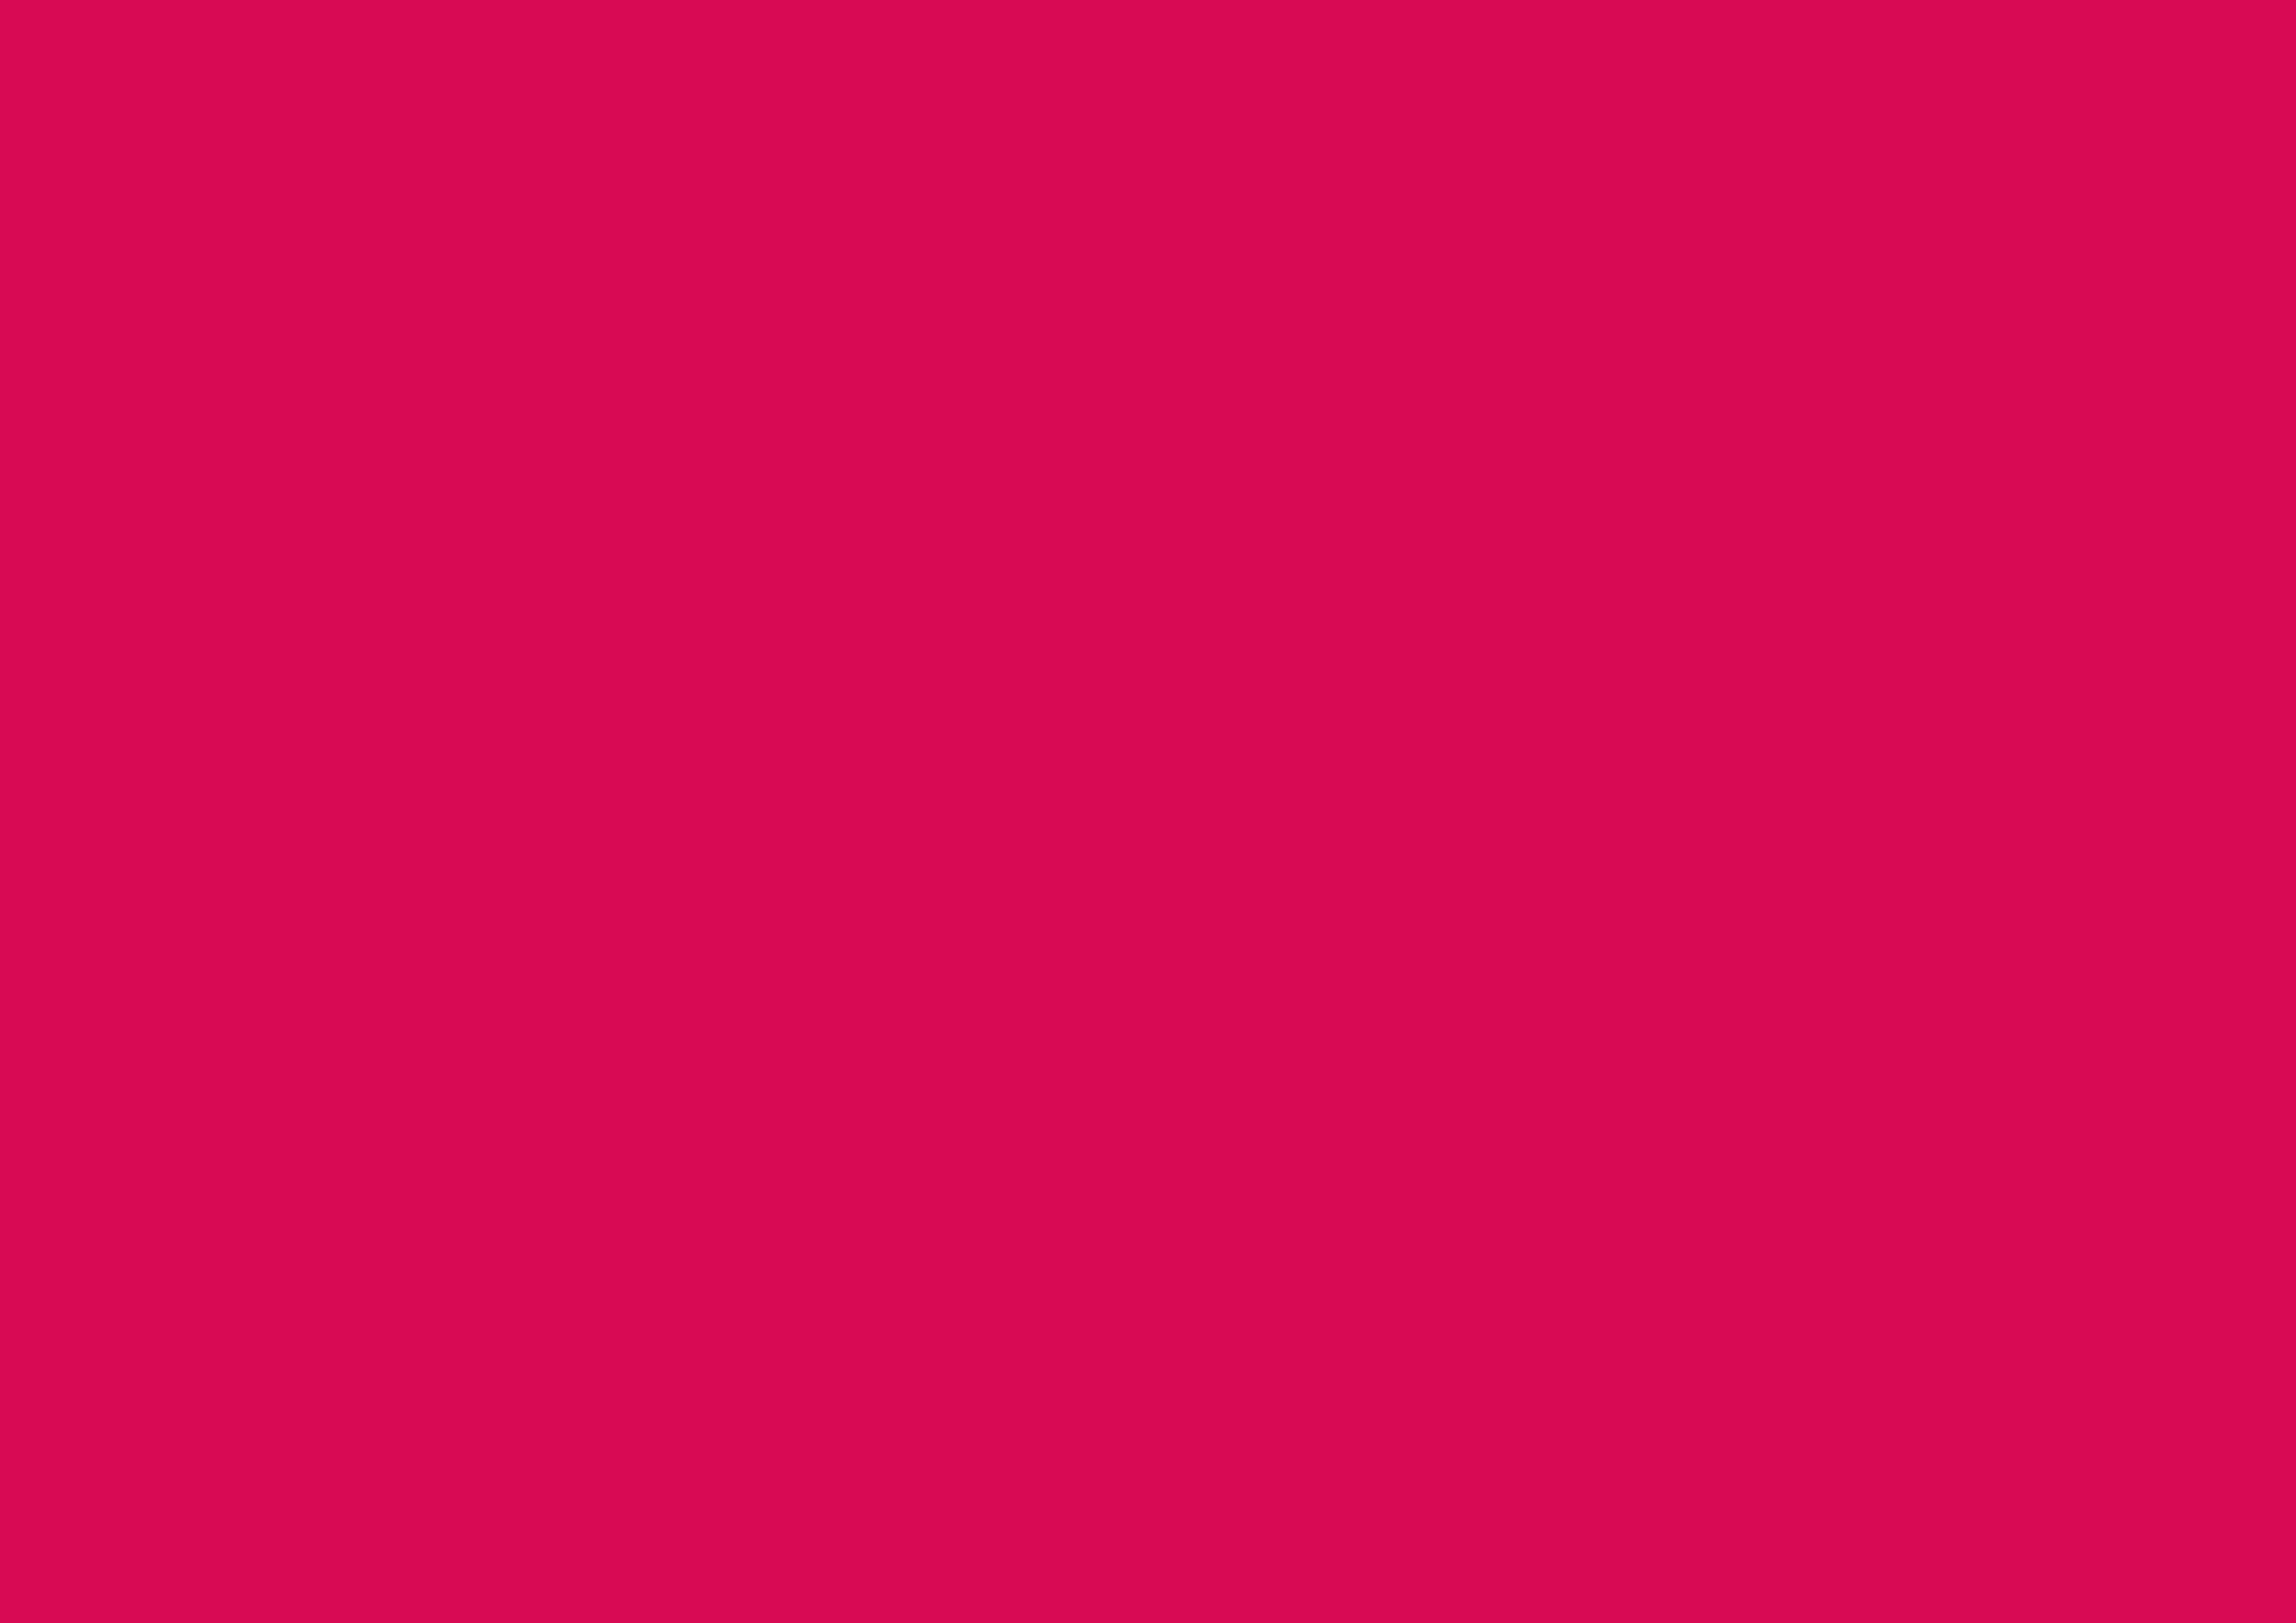 3508x2480 Debian Red Solid Color Background